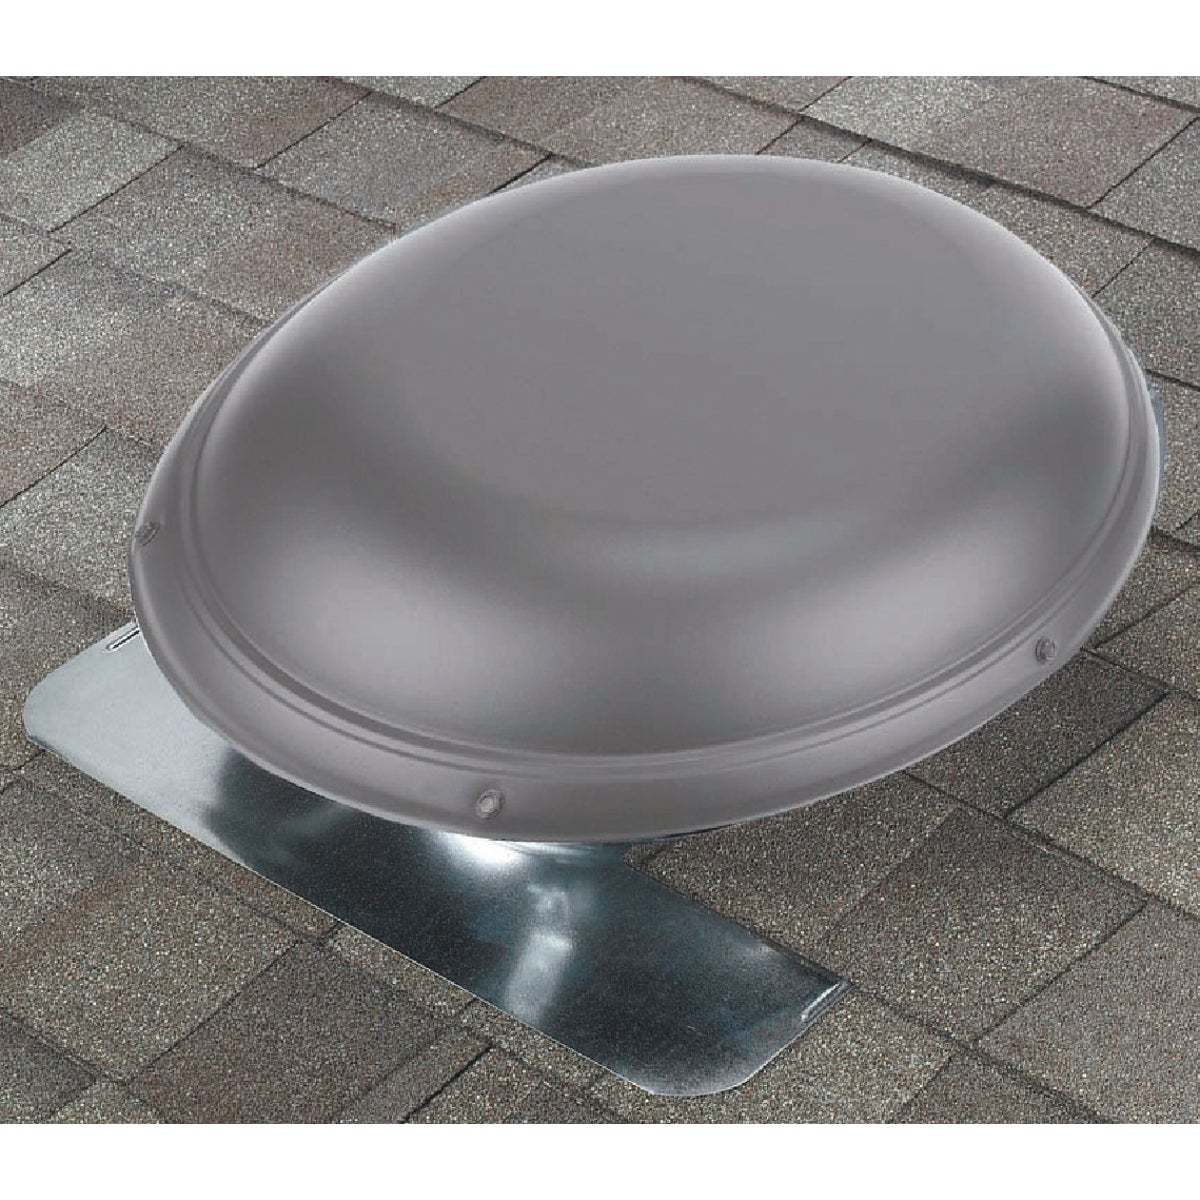 "144"" GRY ALM RND RF VENT - B144MF by Air Vent Inc"